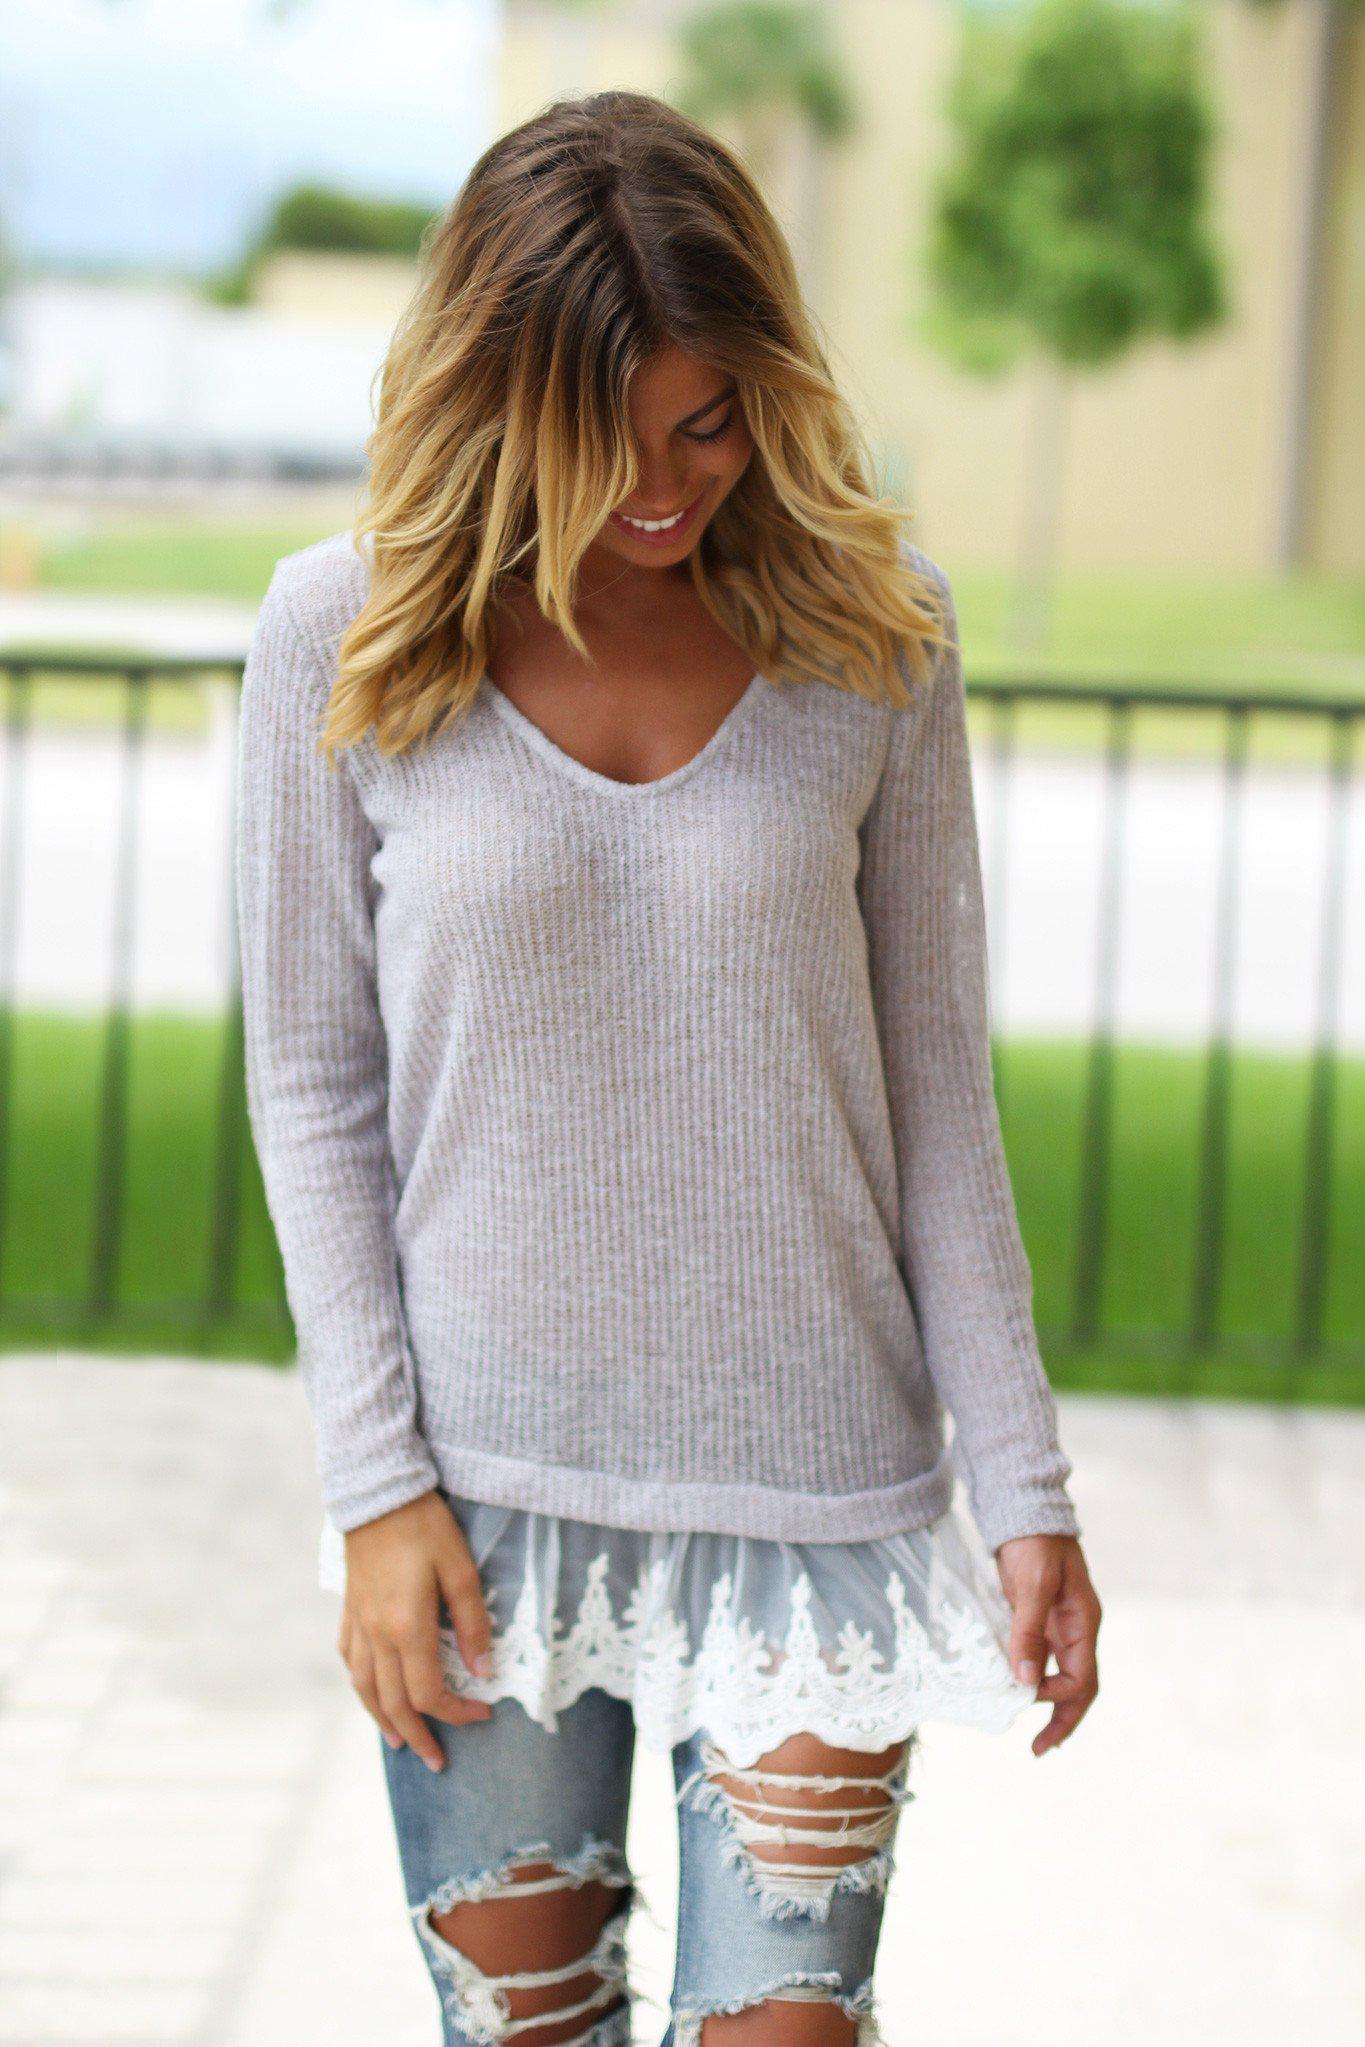 gray sweater with lace detail